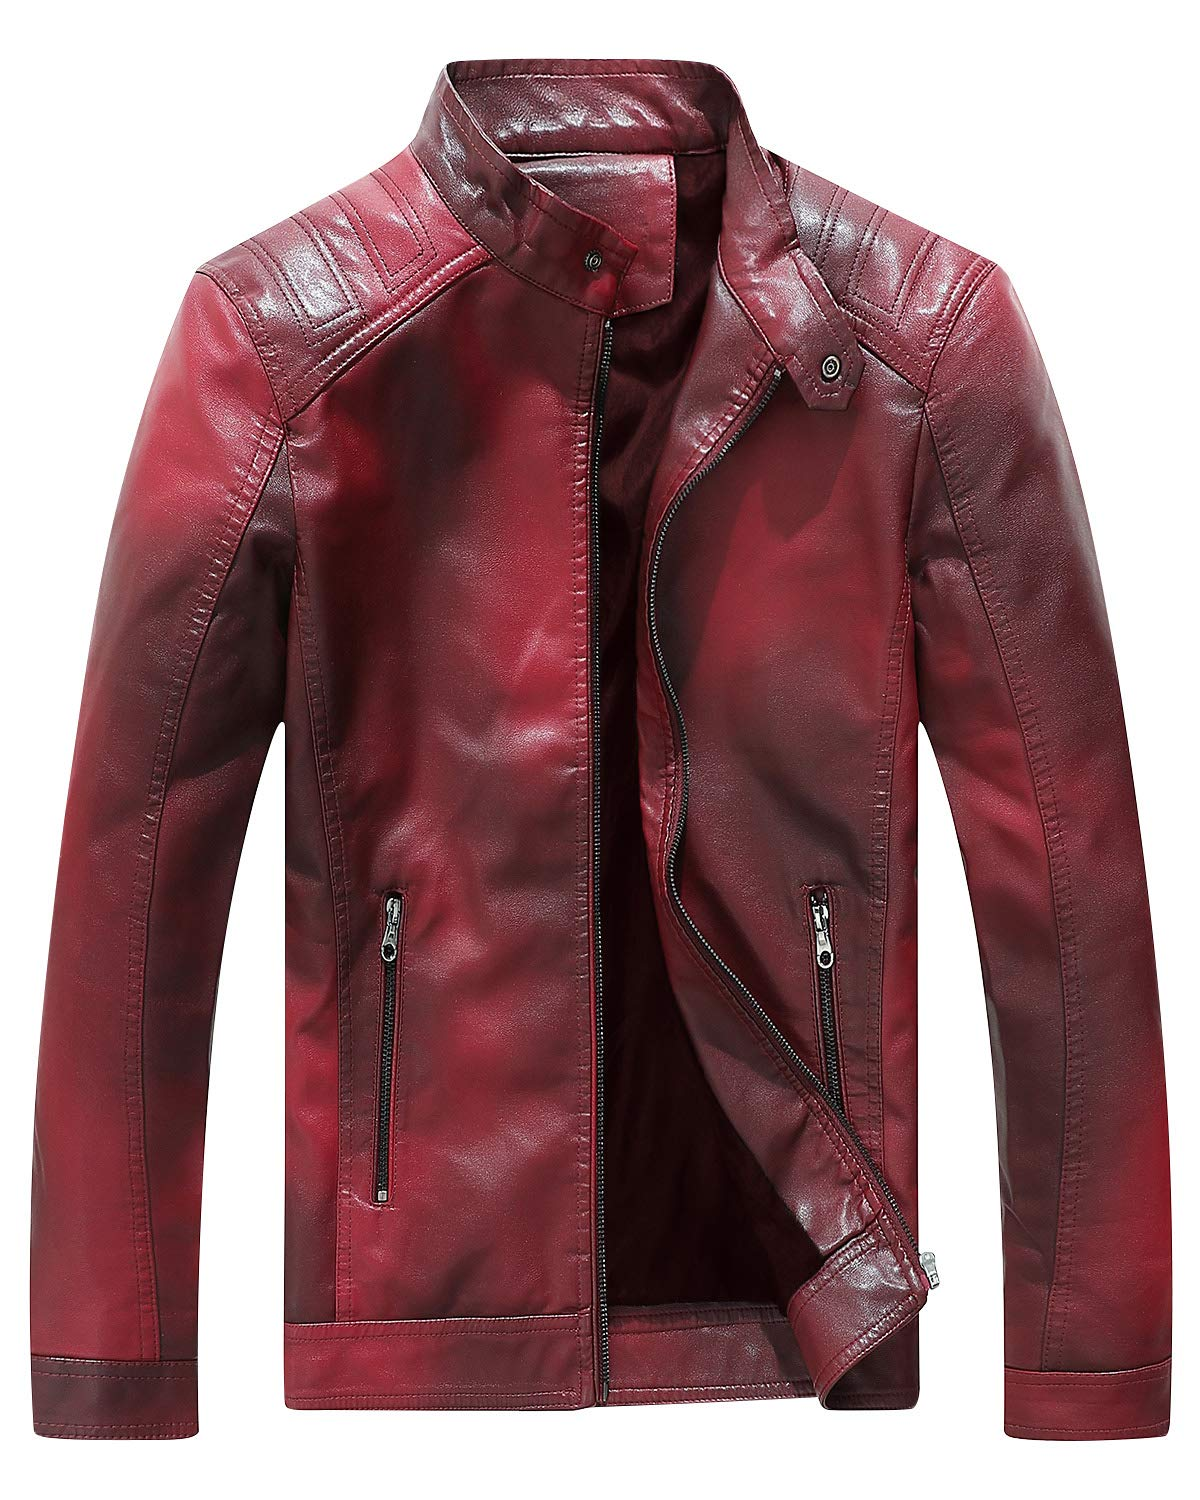 Fairylinks Red Leather Jacket Men Casual Camo, Burgundy, X-Large by Fairylinks